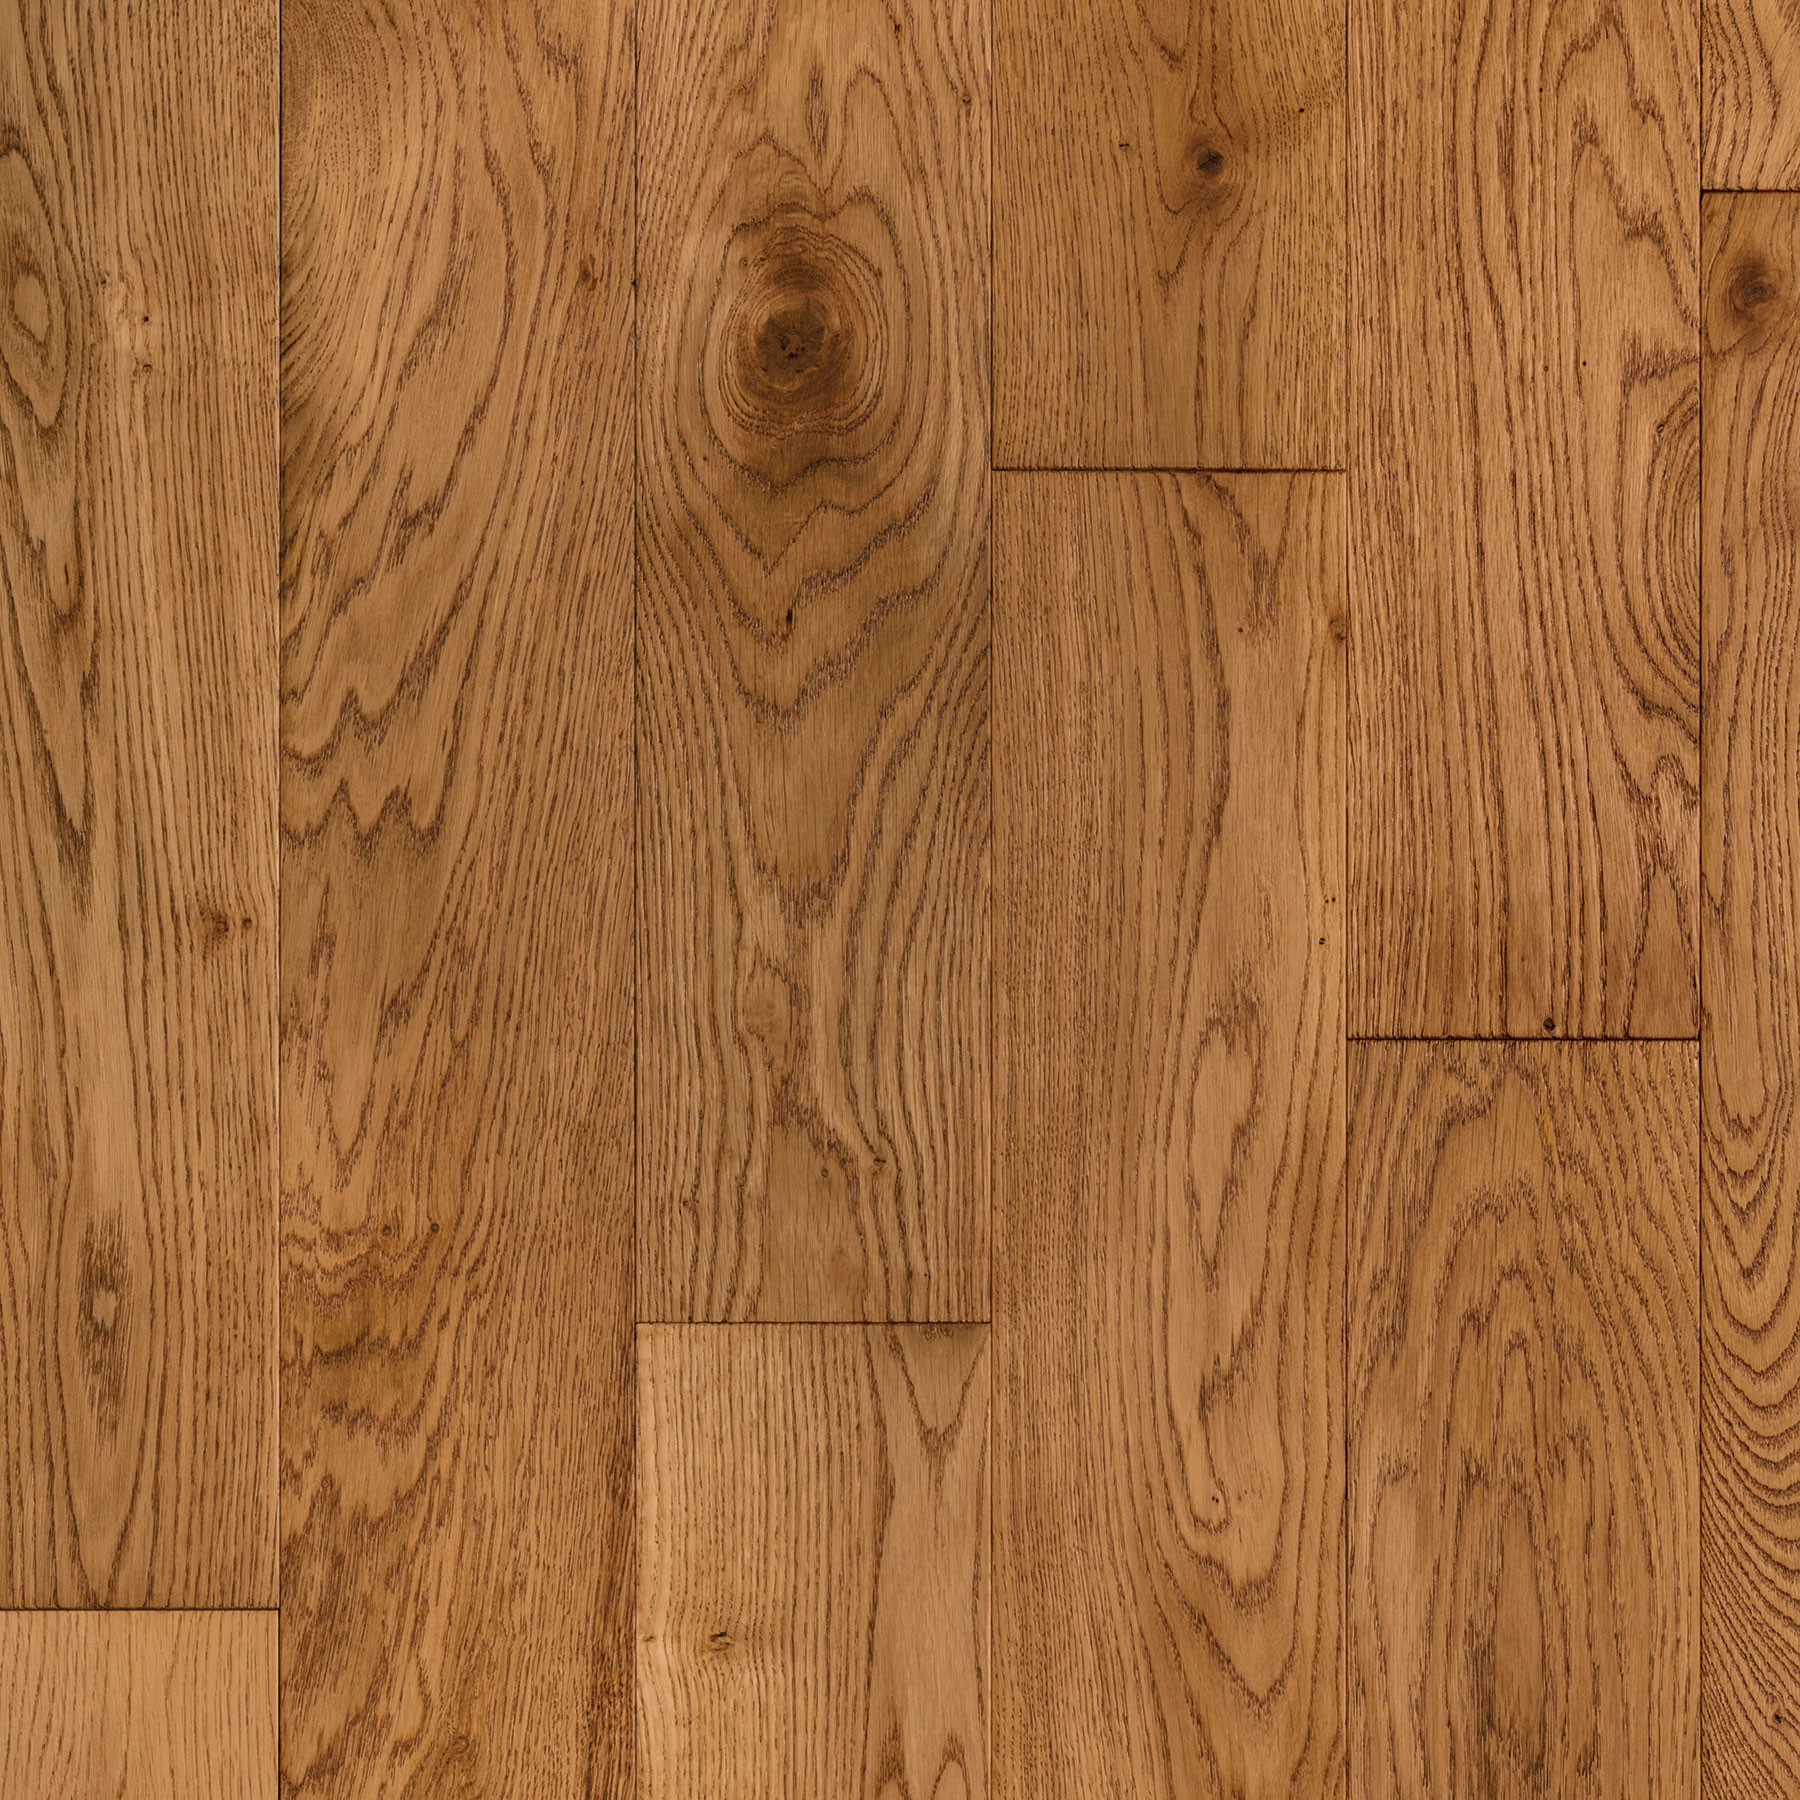 grades of white oak hardwood flooring of harbor oak 5″ white oak sand etx surfaces intended for harbor oak 5″ white oak sand